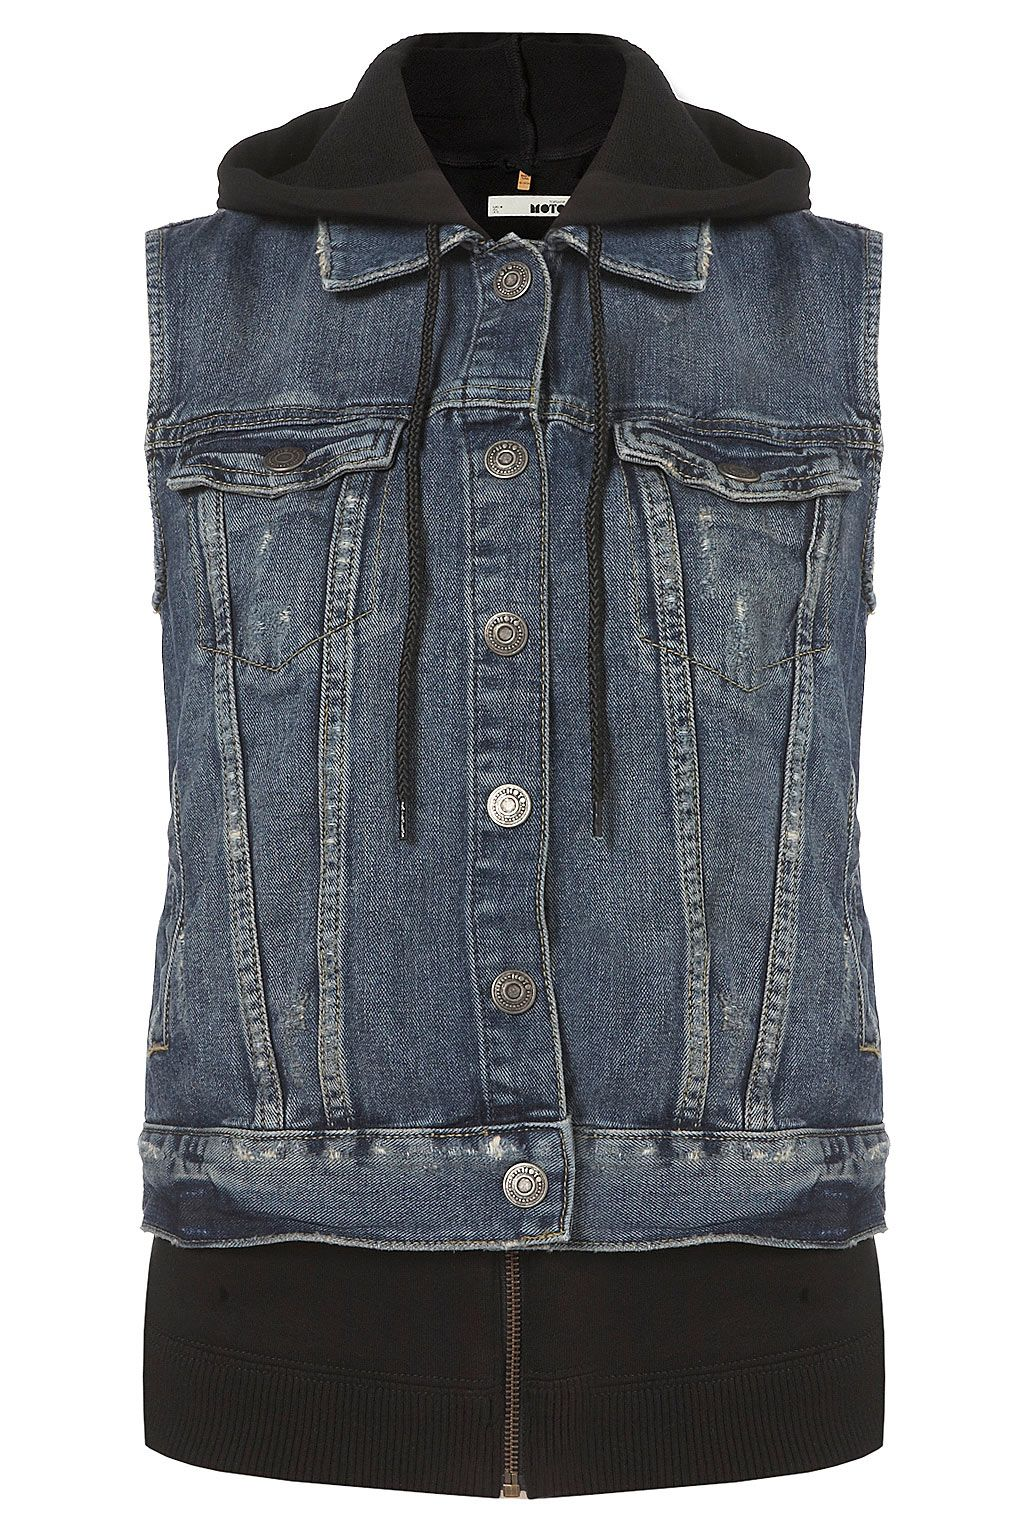 topshop_moto jersey hood denim gilet  I NEED IT OR I WILL DIE. DIE I TELL YOU